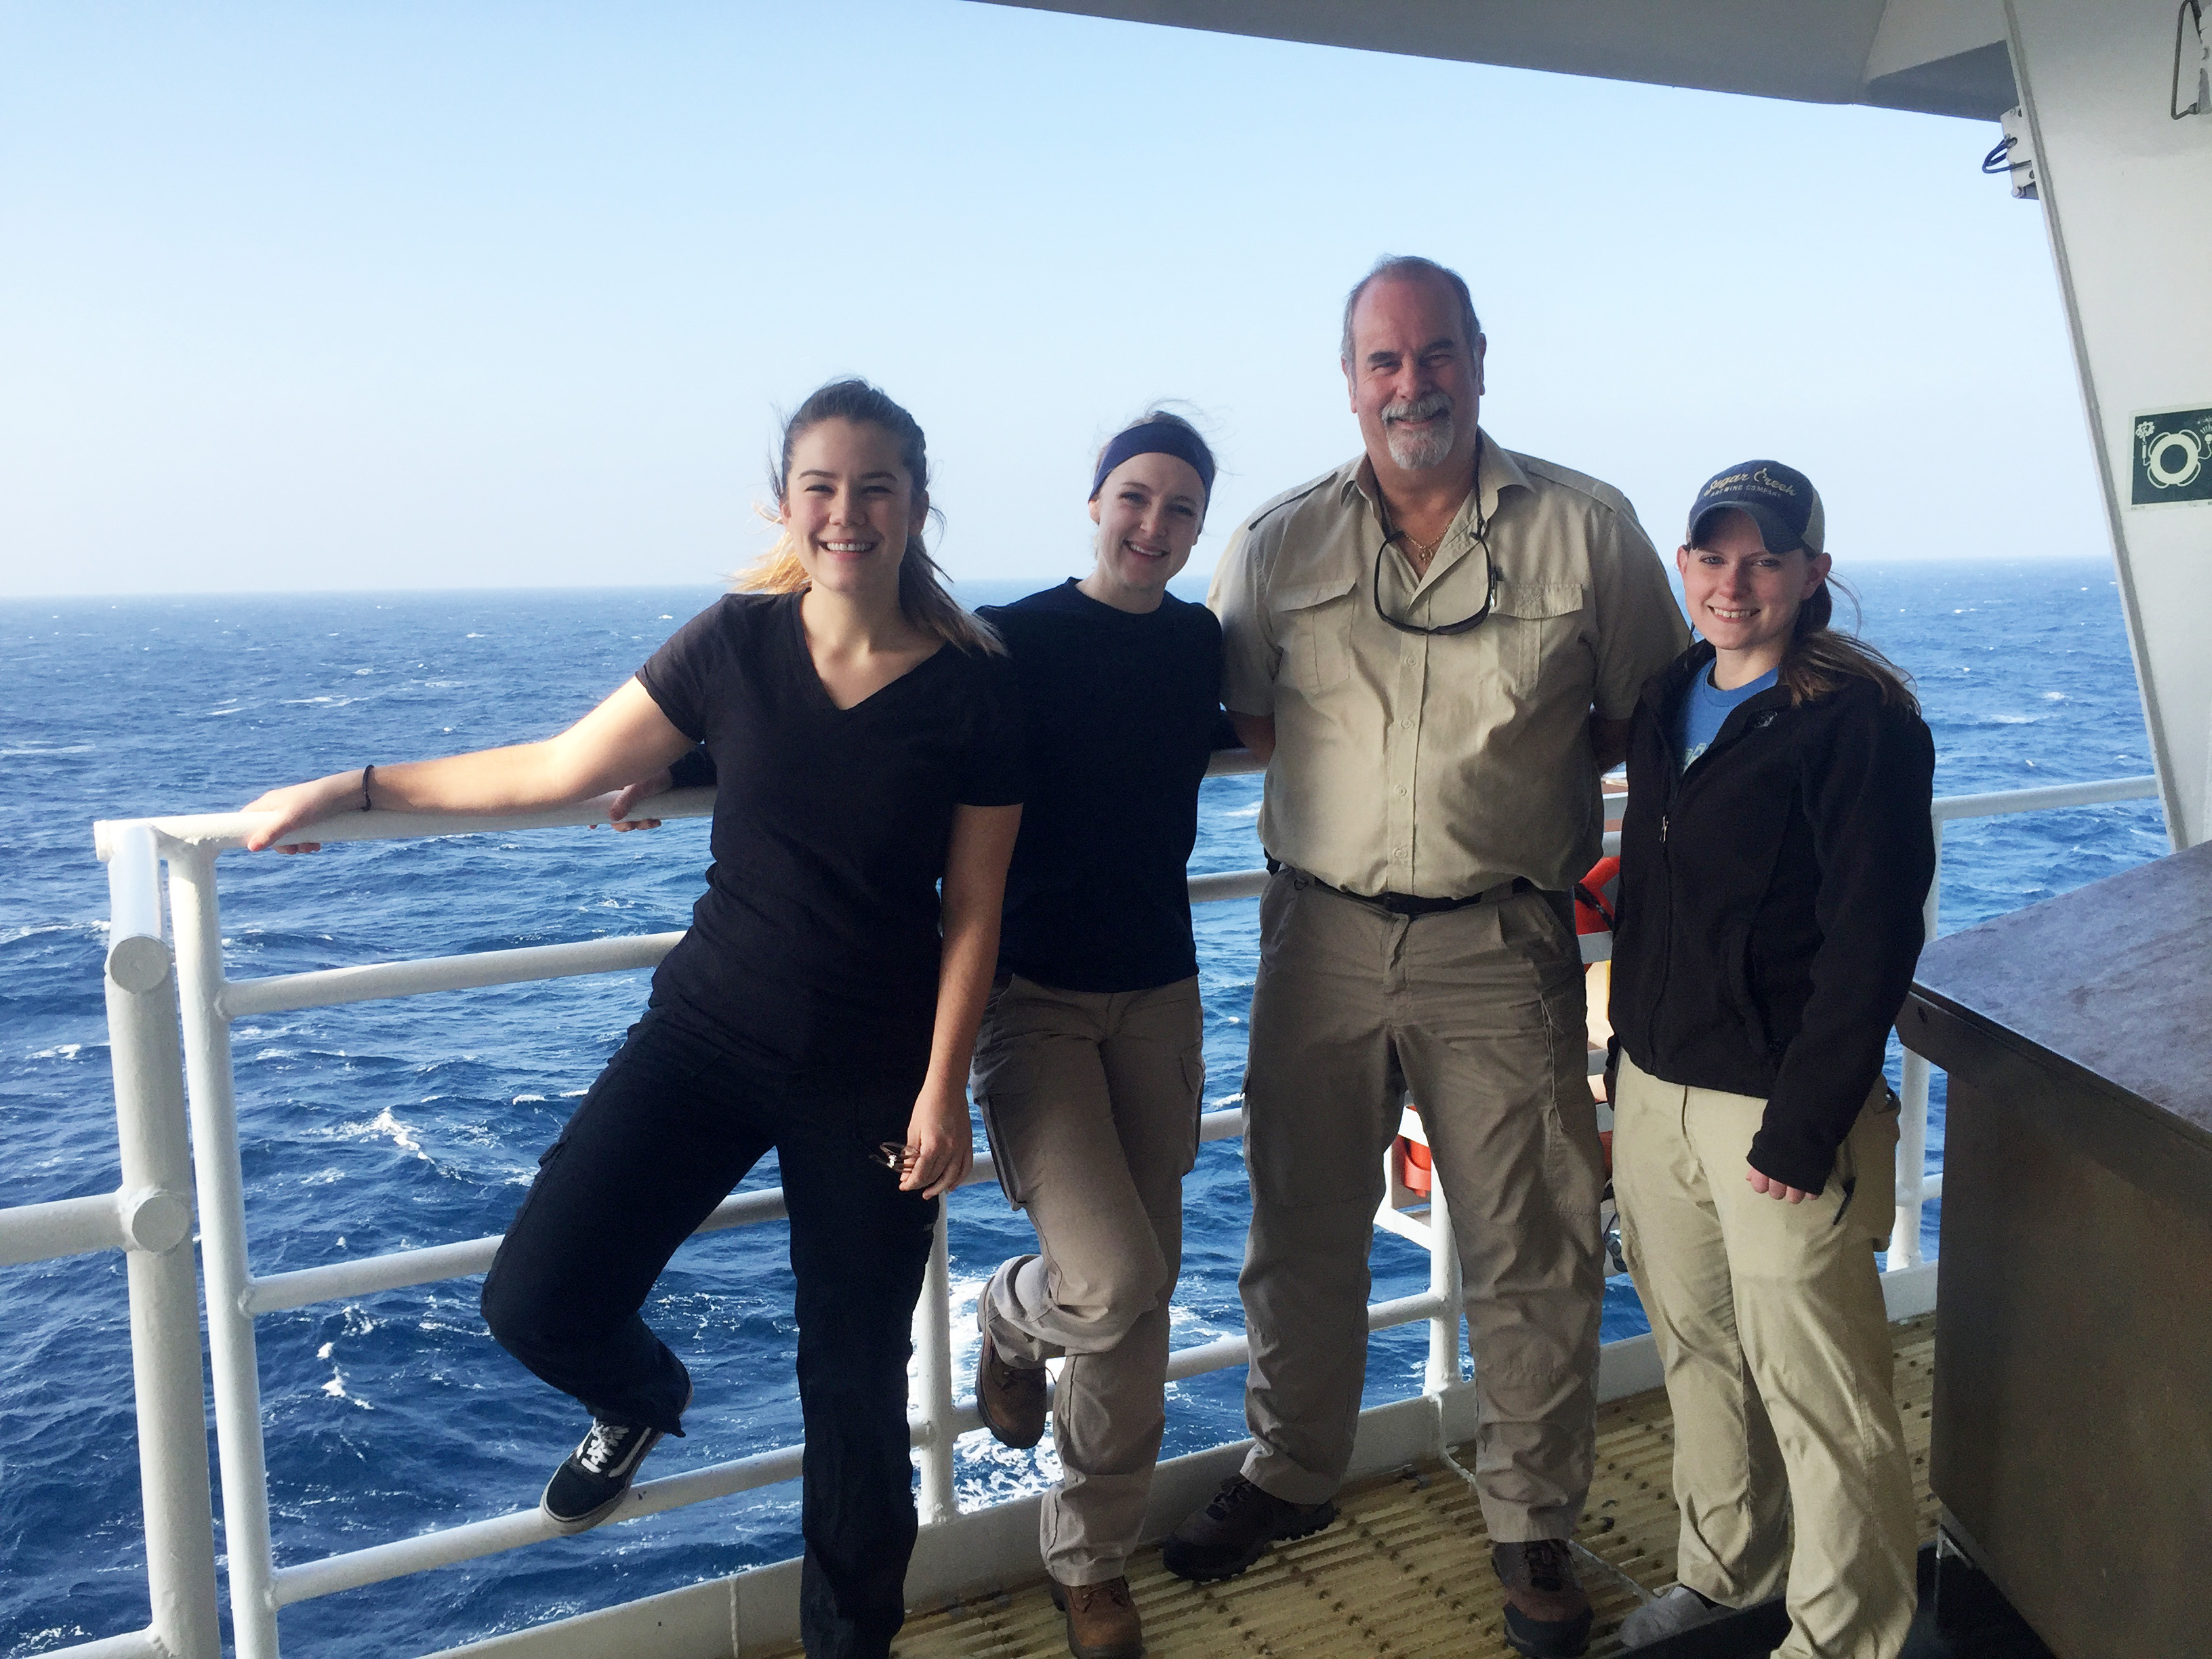 Historic All-Female Bridge Watch on Crowley-Managed Ship Marks Milestone for Women in Maritime